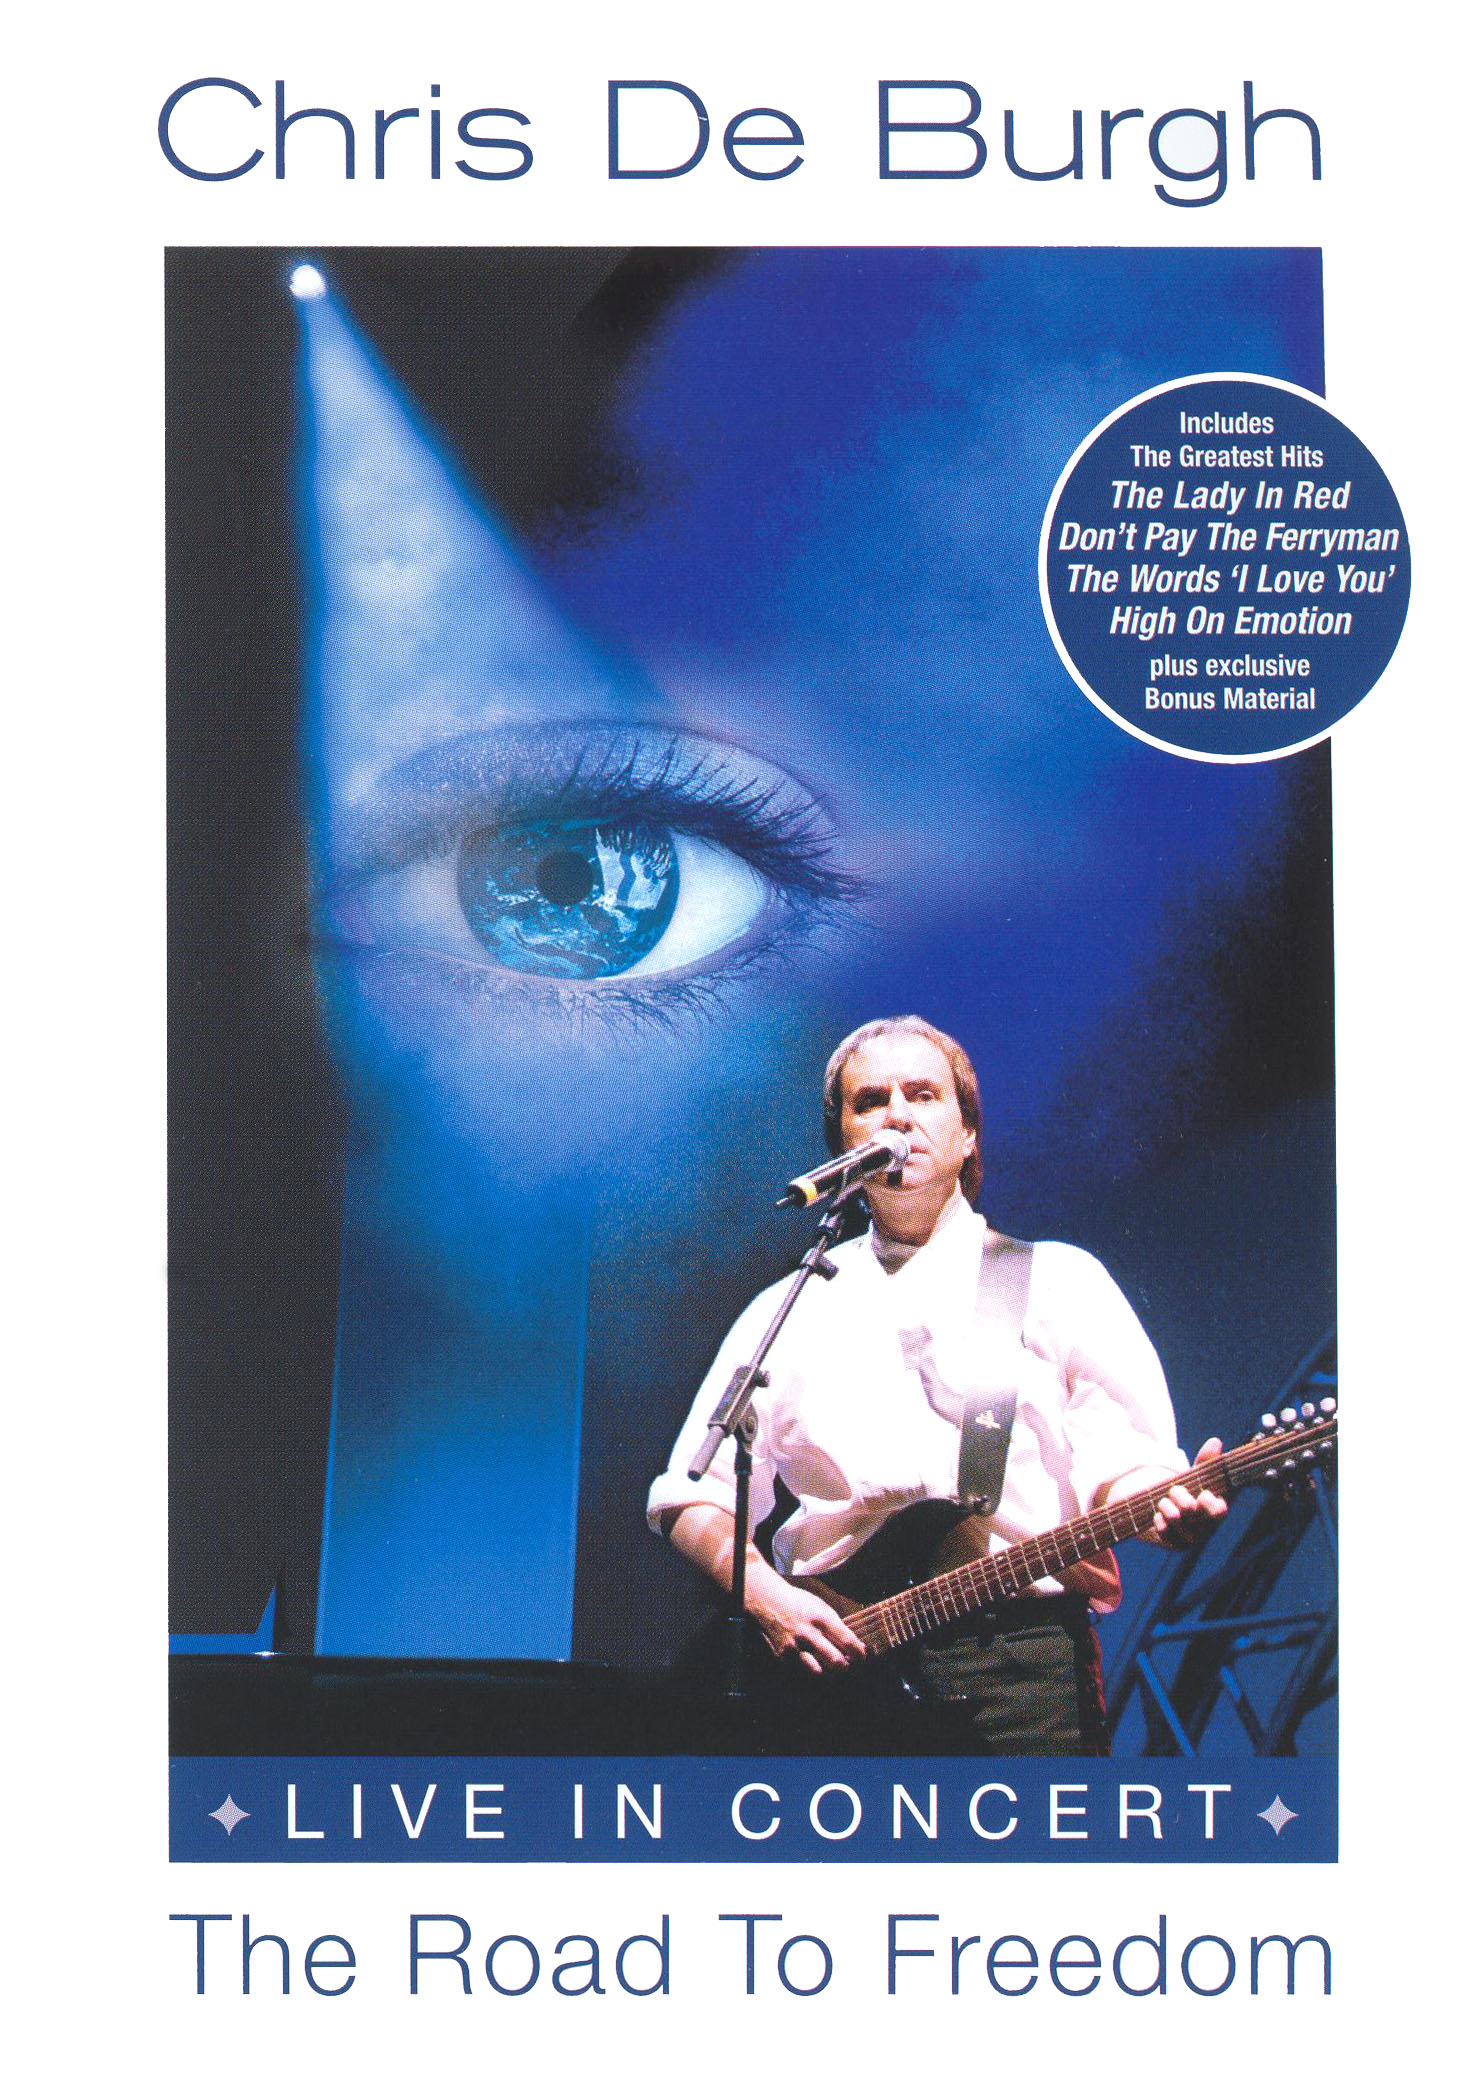 Chris de Burgh: Live in Concert - The Road to Freedom